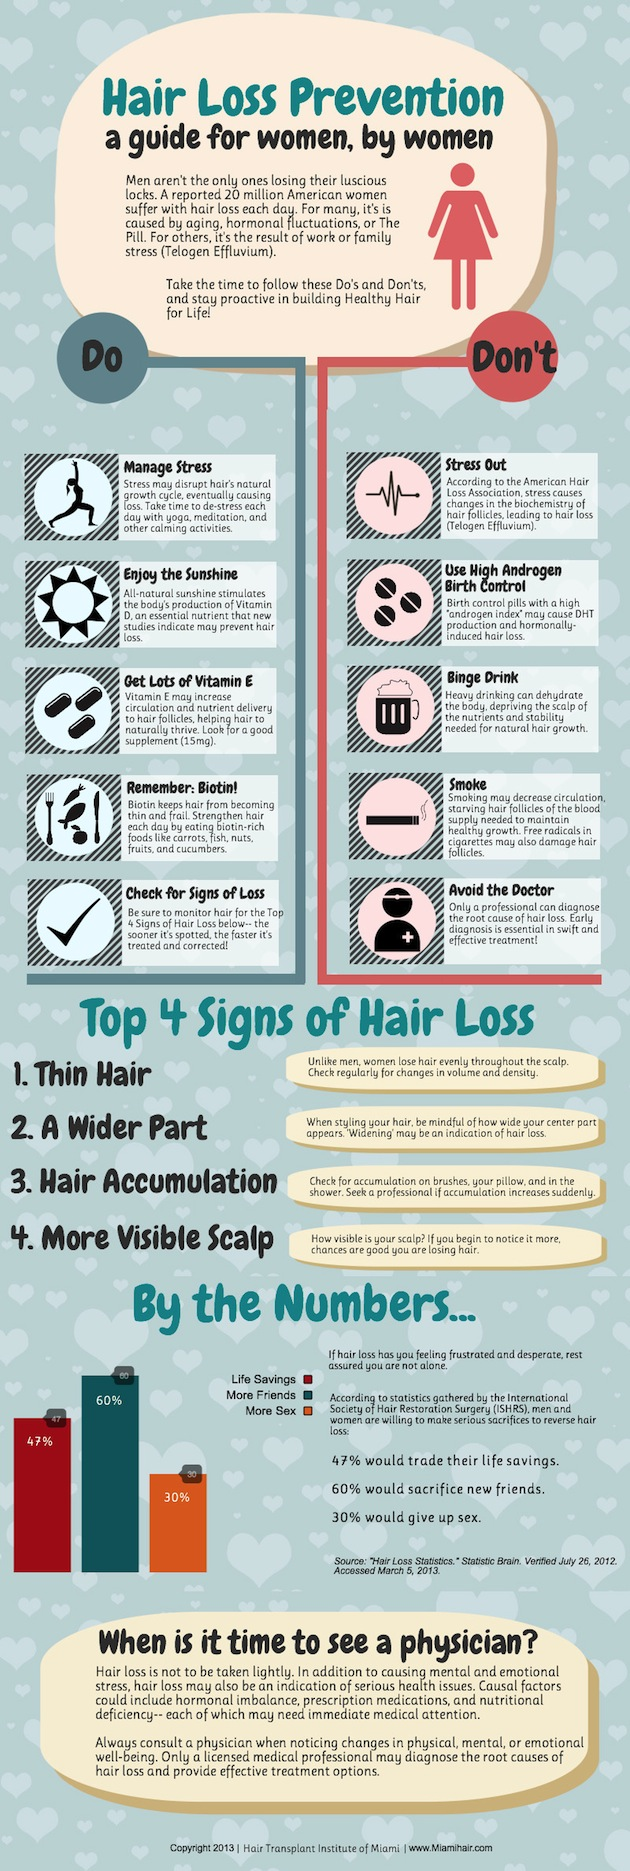 Hair Loss Prevention for Women